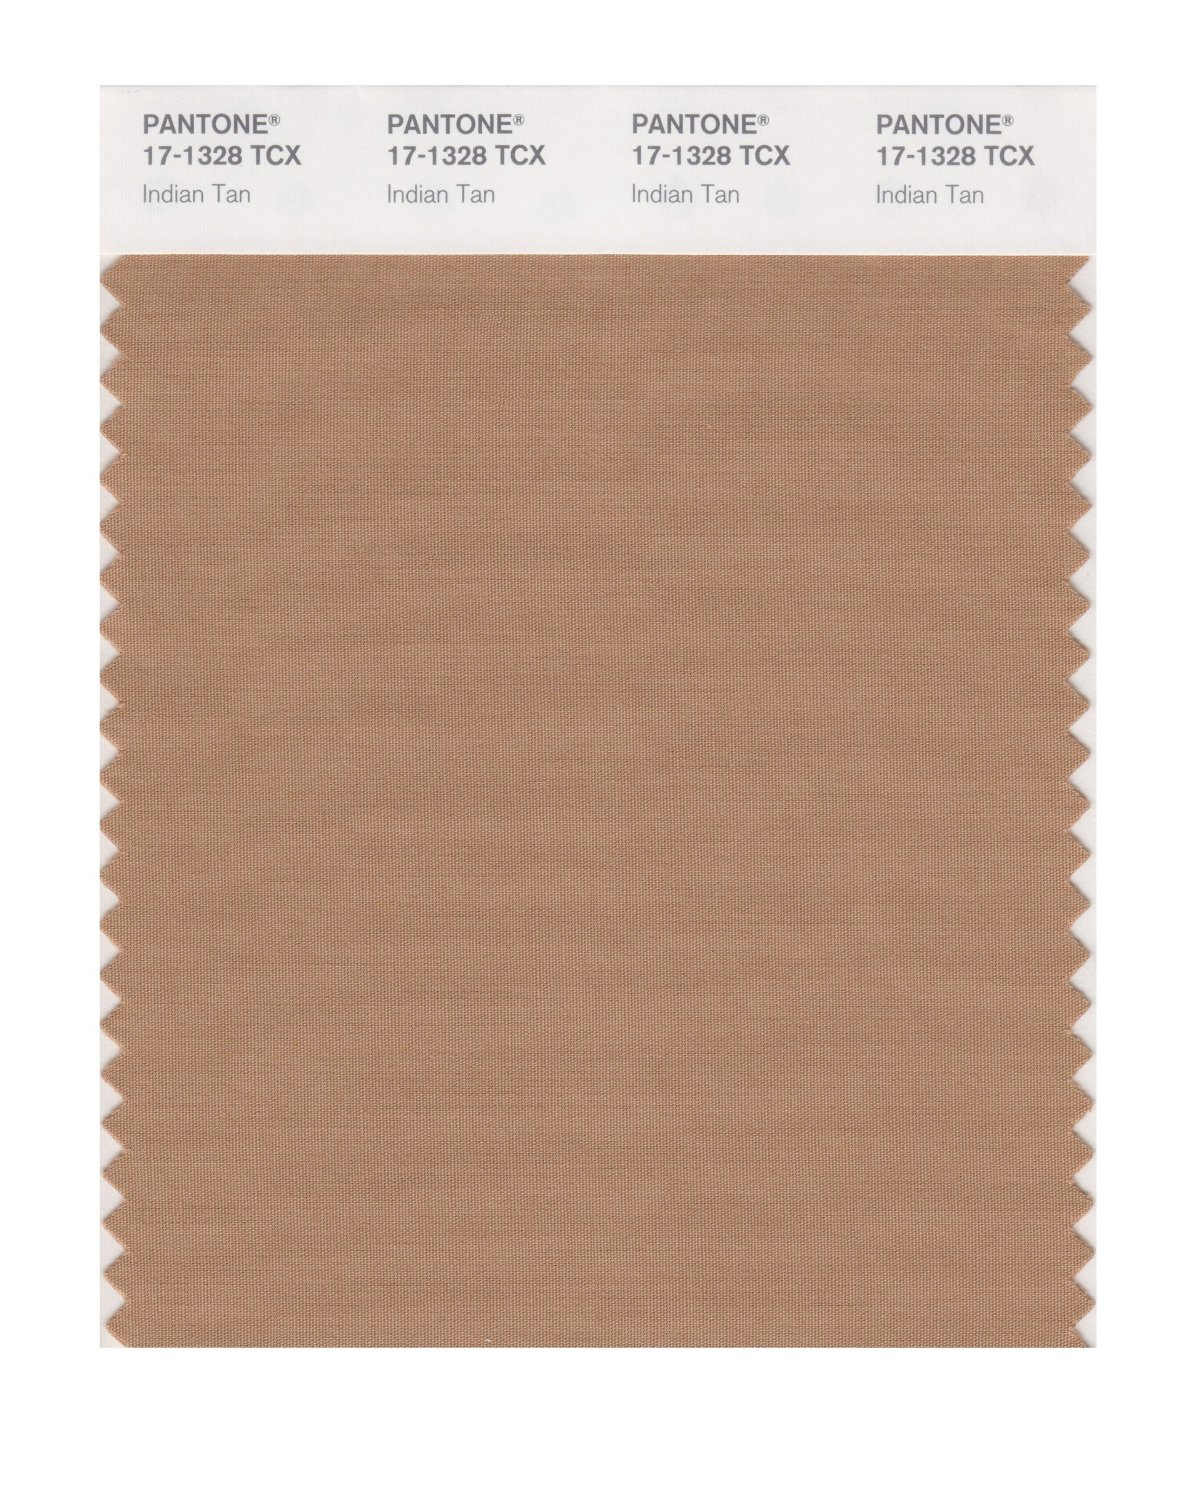 Pantone Smart Swatch 17-1328 Indian Tan